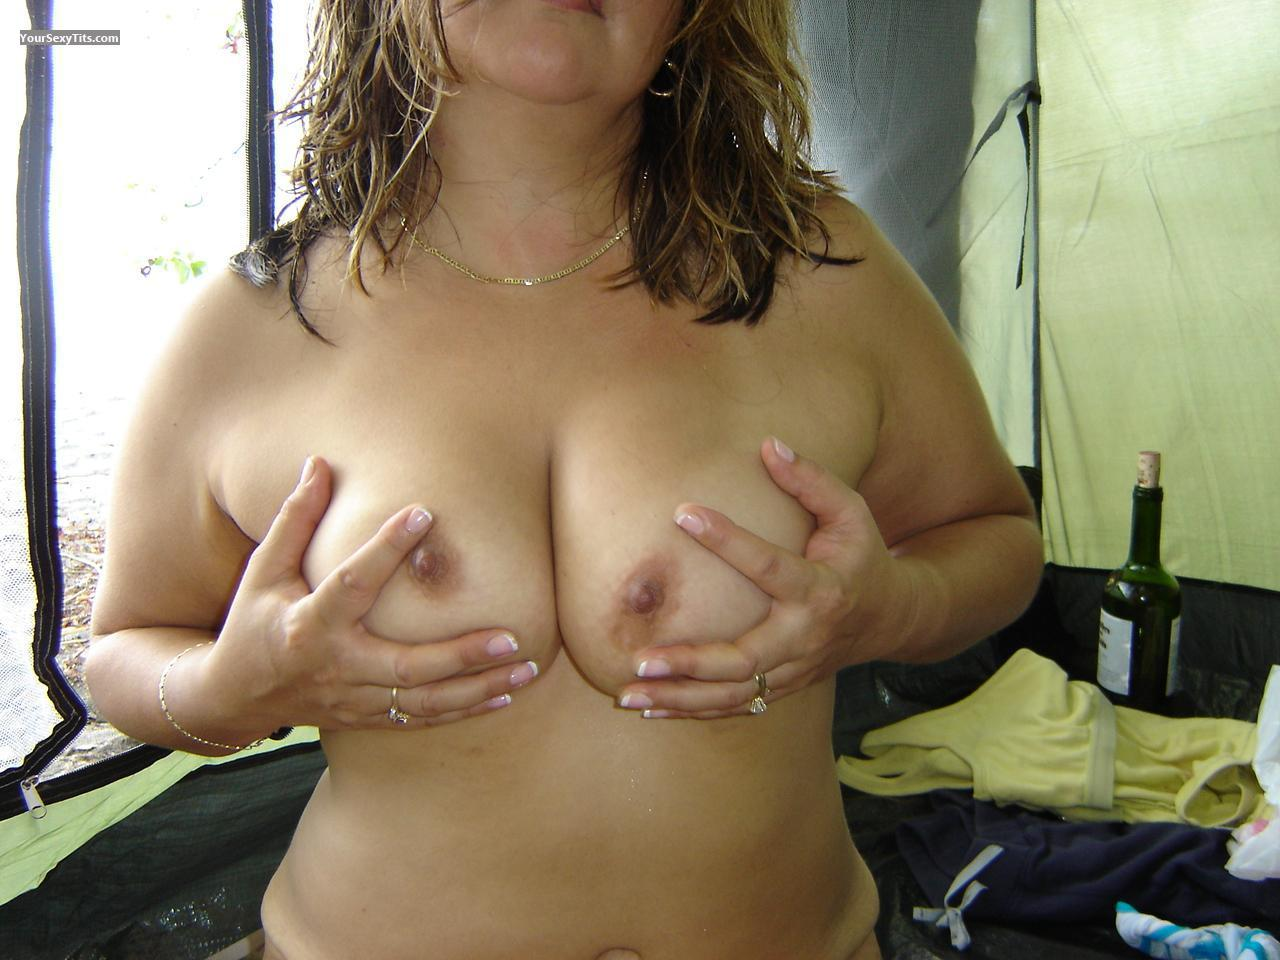 Tit Flash: Medium Tits - Brionna from Costa Rica